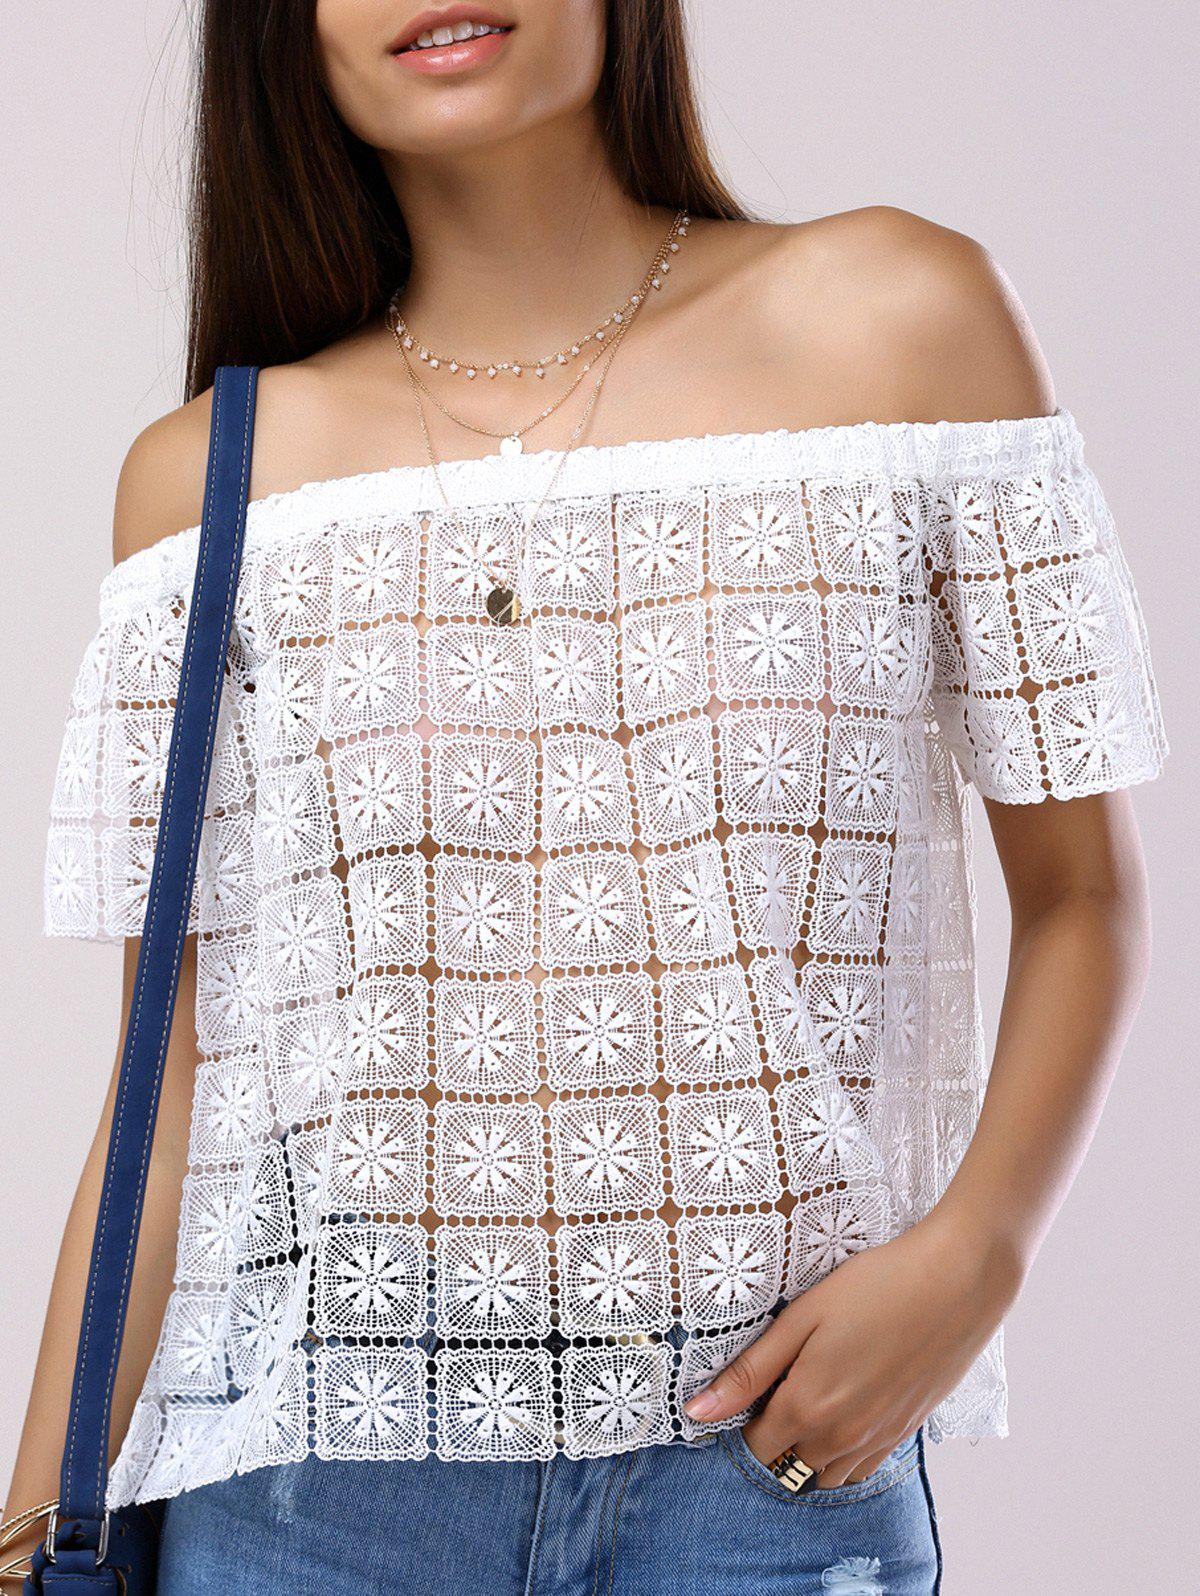 Fashionable Short Sleeves Off-The-Shoulder Cut-Out Lace Blouse For Women